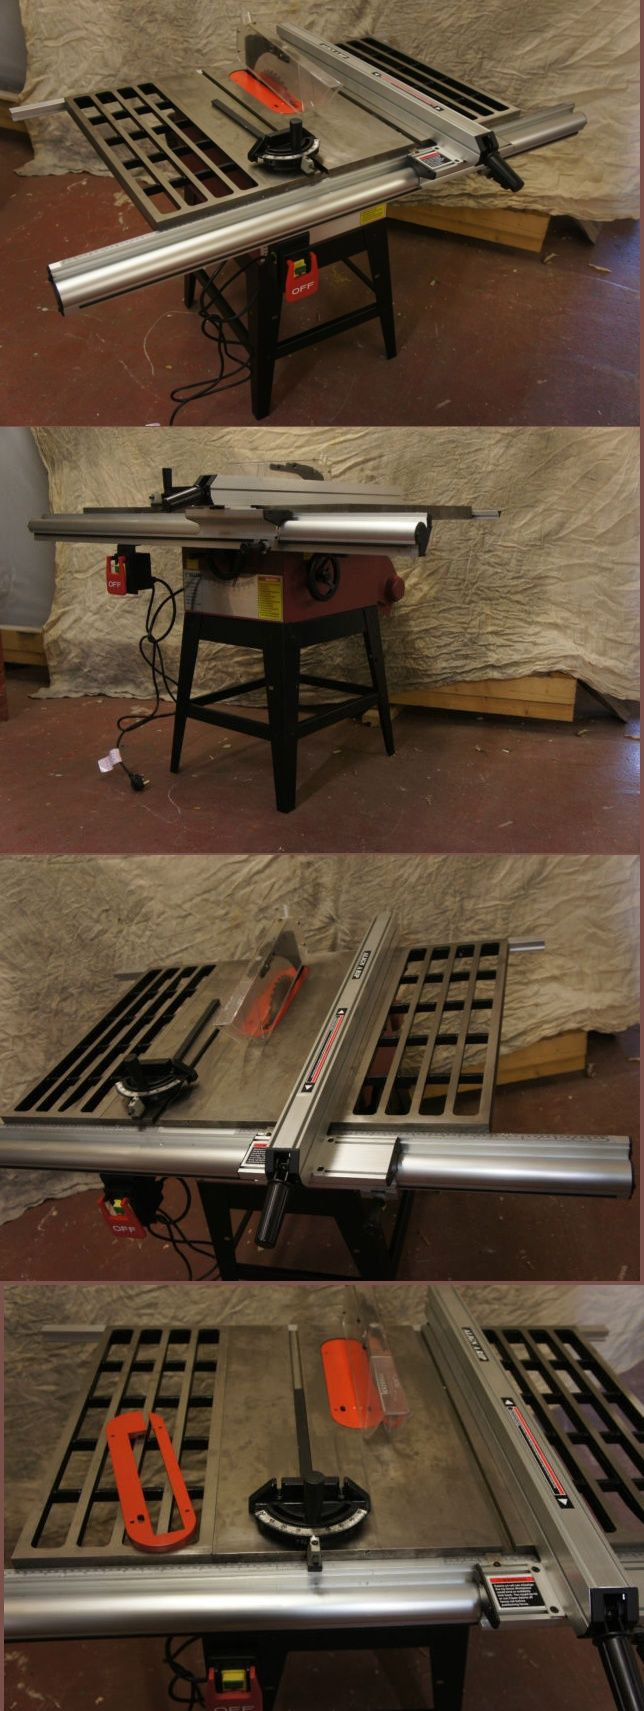 """Checkout """"New"""" Xcalibur 10"""" inch Table Saw 240v 2.2HP... More Detail... http://www.ebay.com/itm/Xcalibur-10-inch-Table-Saw-240v-2-2HP-/151164868285?pt=UK_Home_Garden_PowerTools_SM&hash=item233220d6bd"""